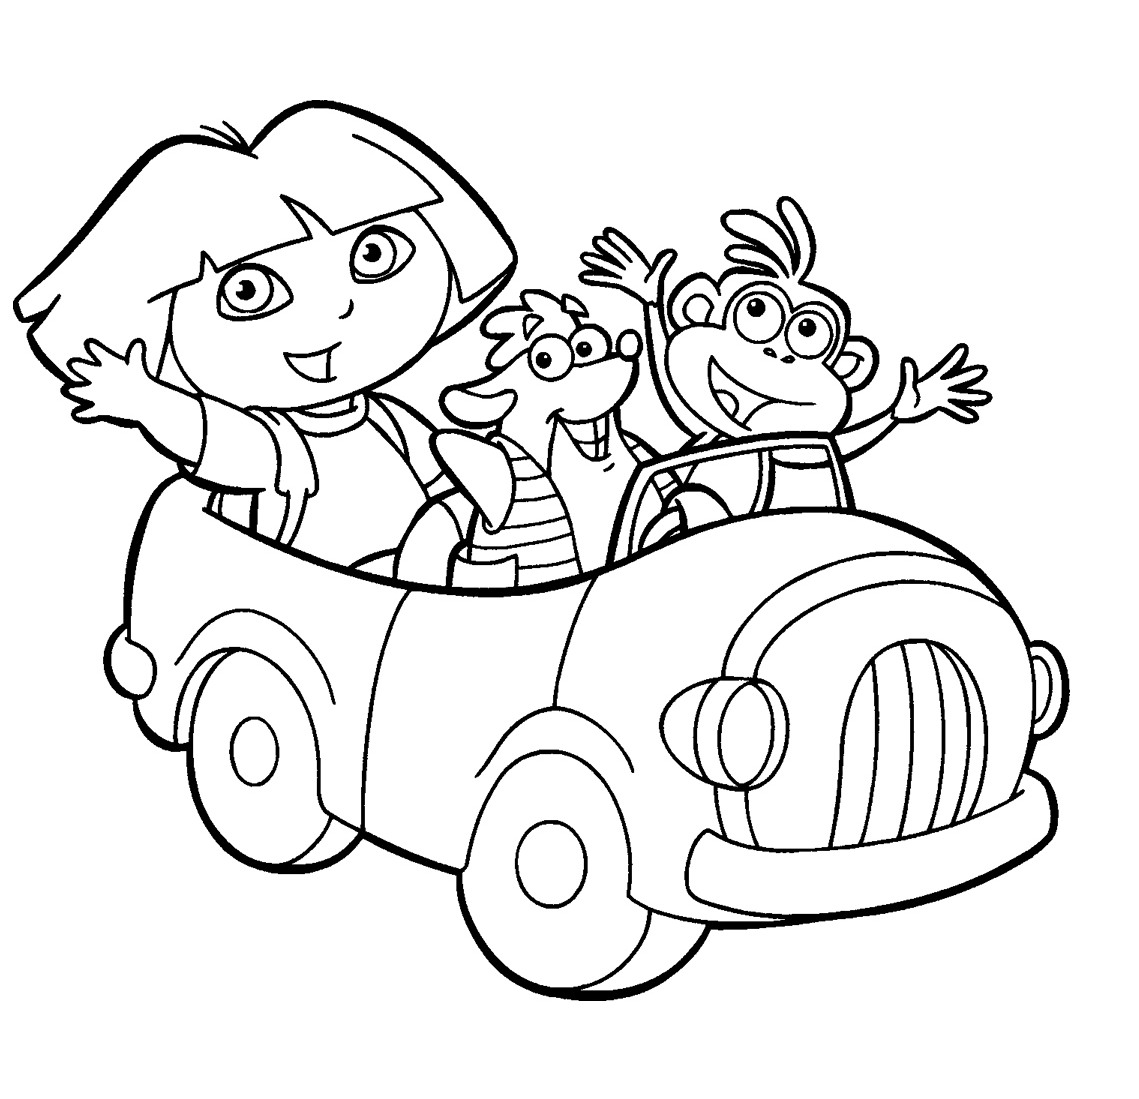 dora the explorer images to print dora the explorer coloring pages free to printfree explorer dora print to images the